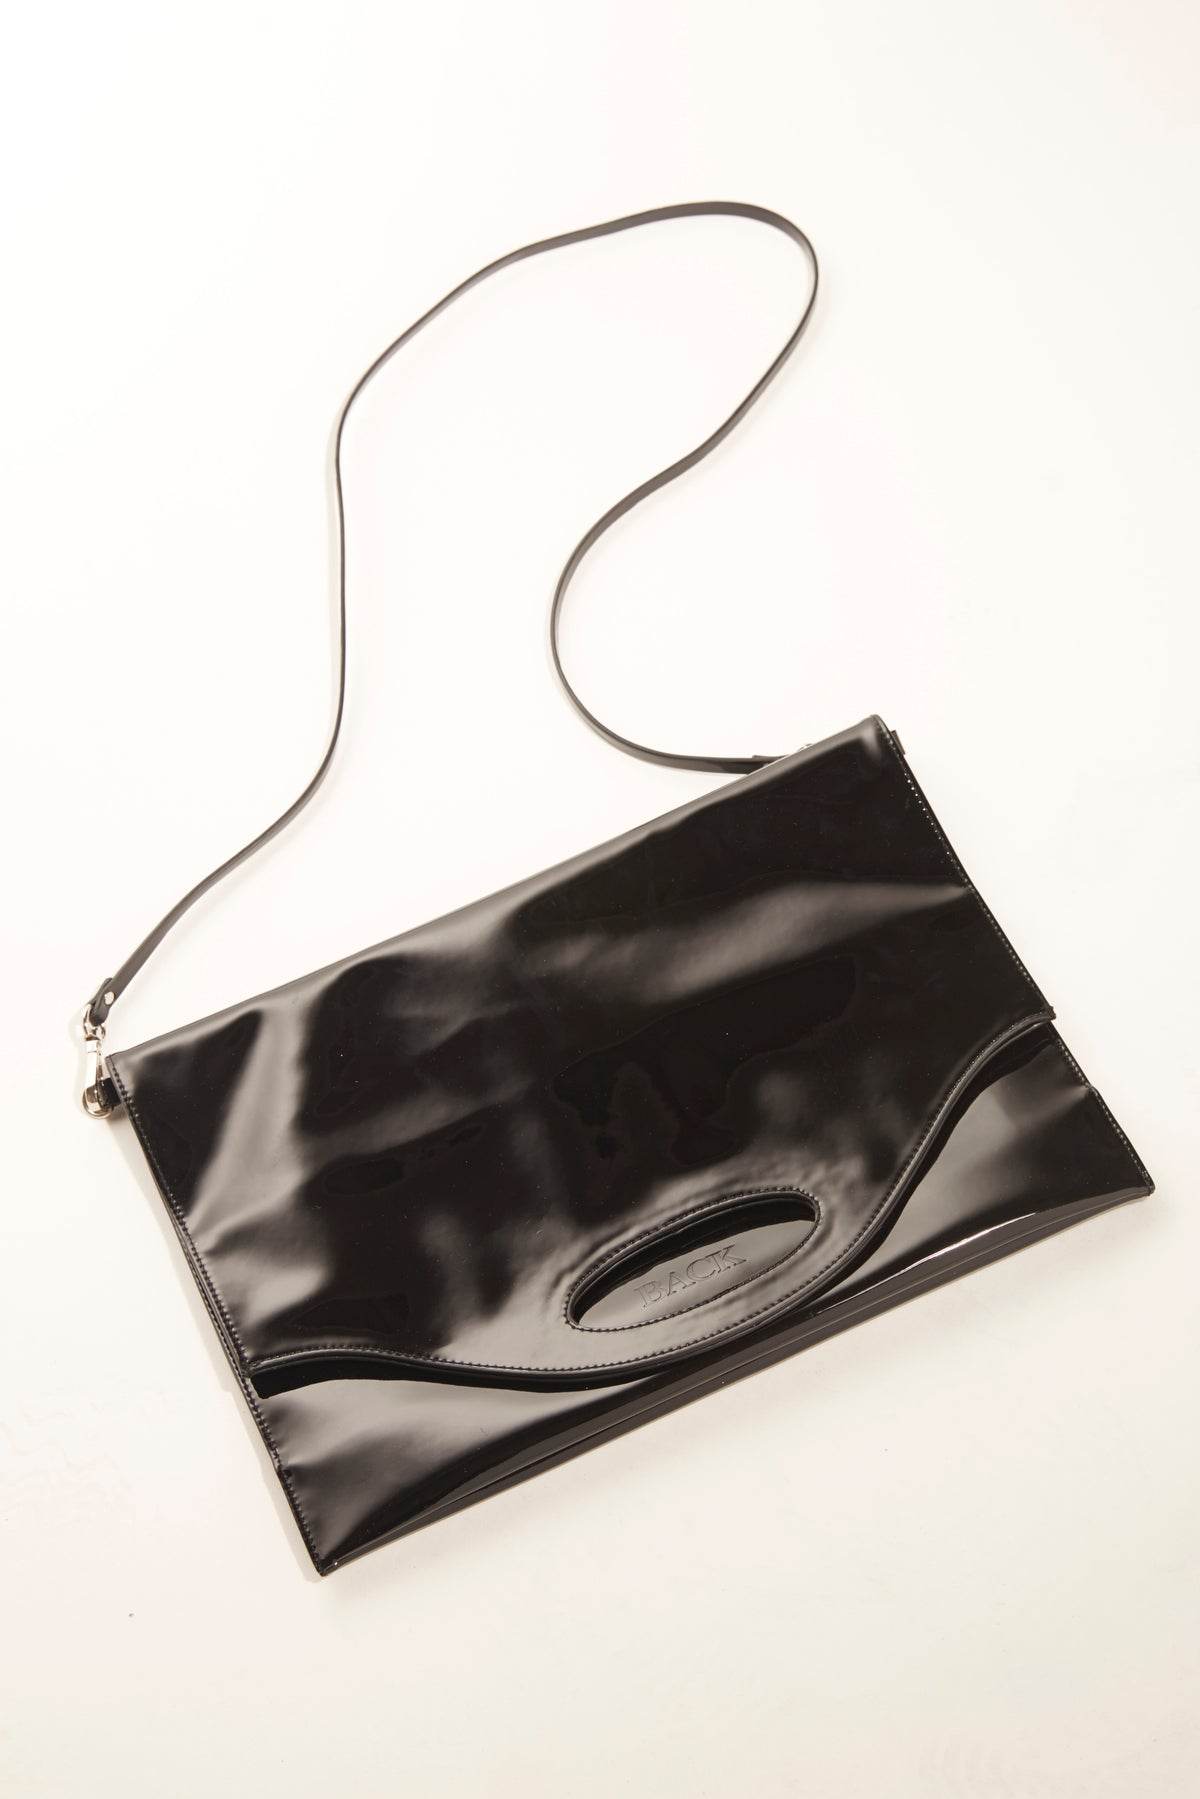 Shopper Bag - Black Patent